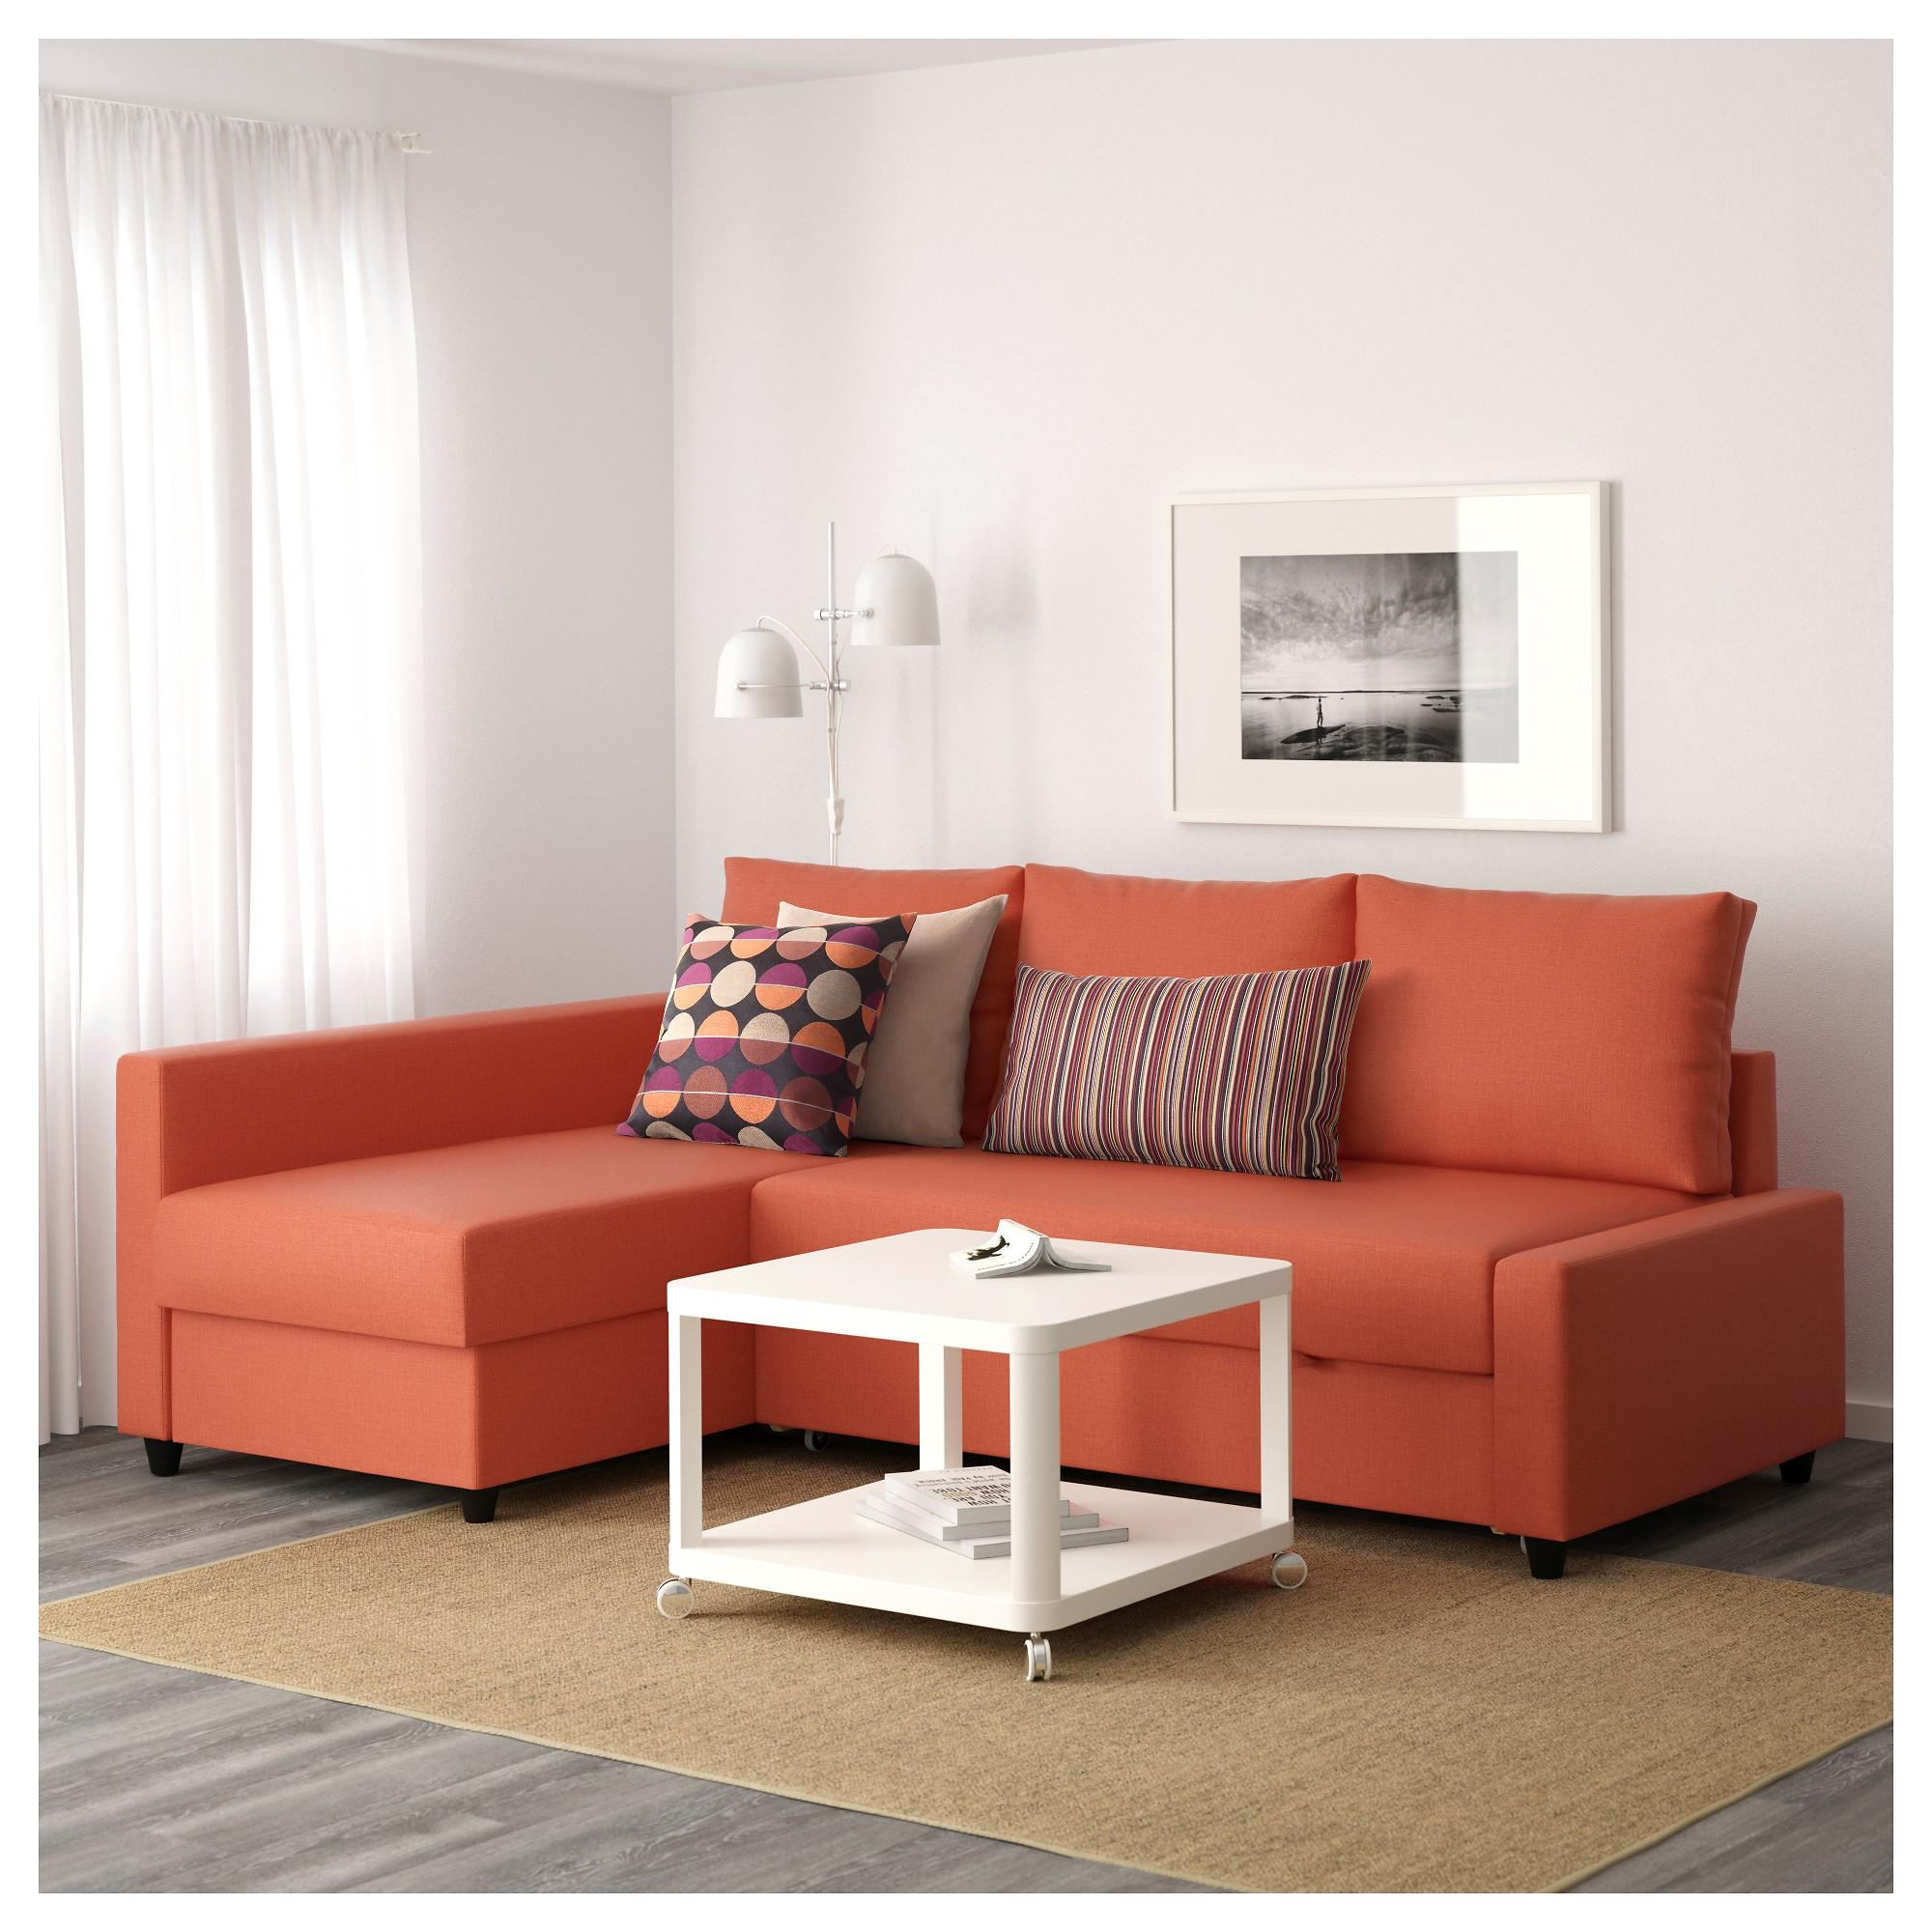 Carrefour Sofas Cama Orange Ikea Sofa Tylosand Sofa Bed From Ikea Apartment